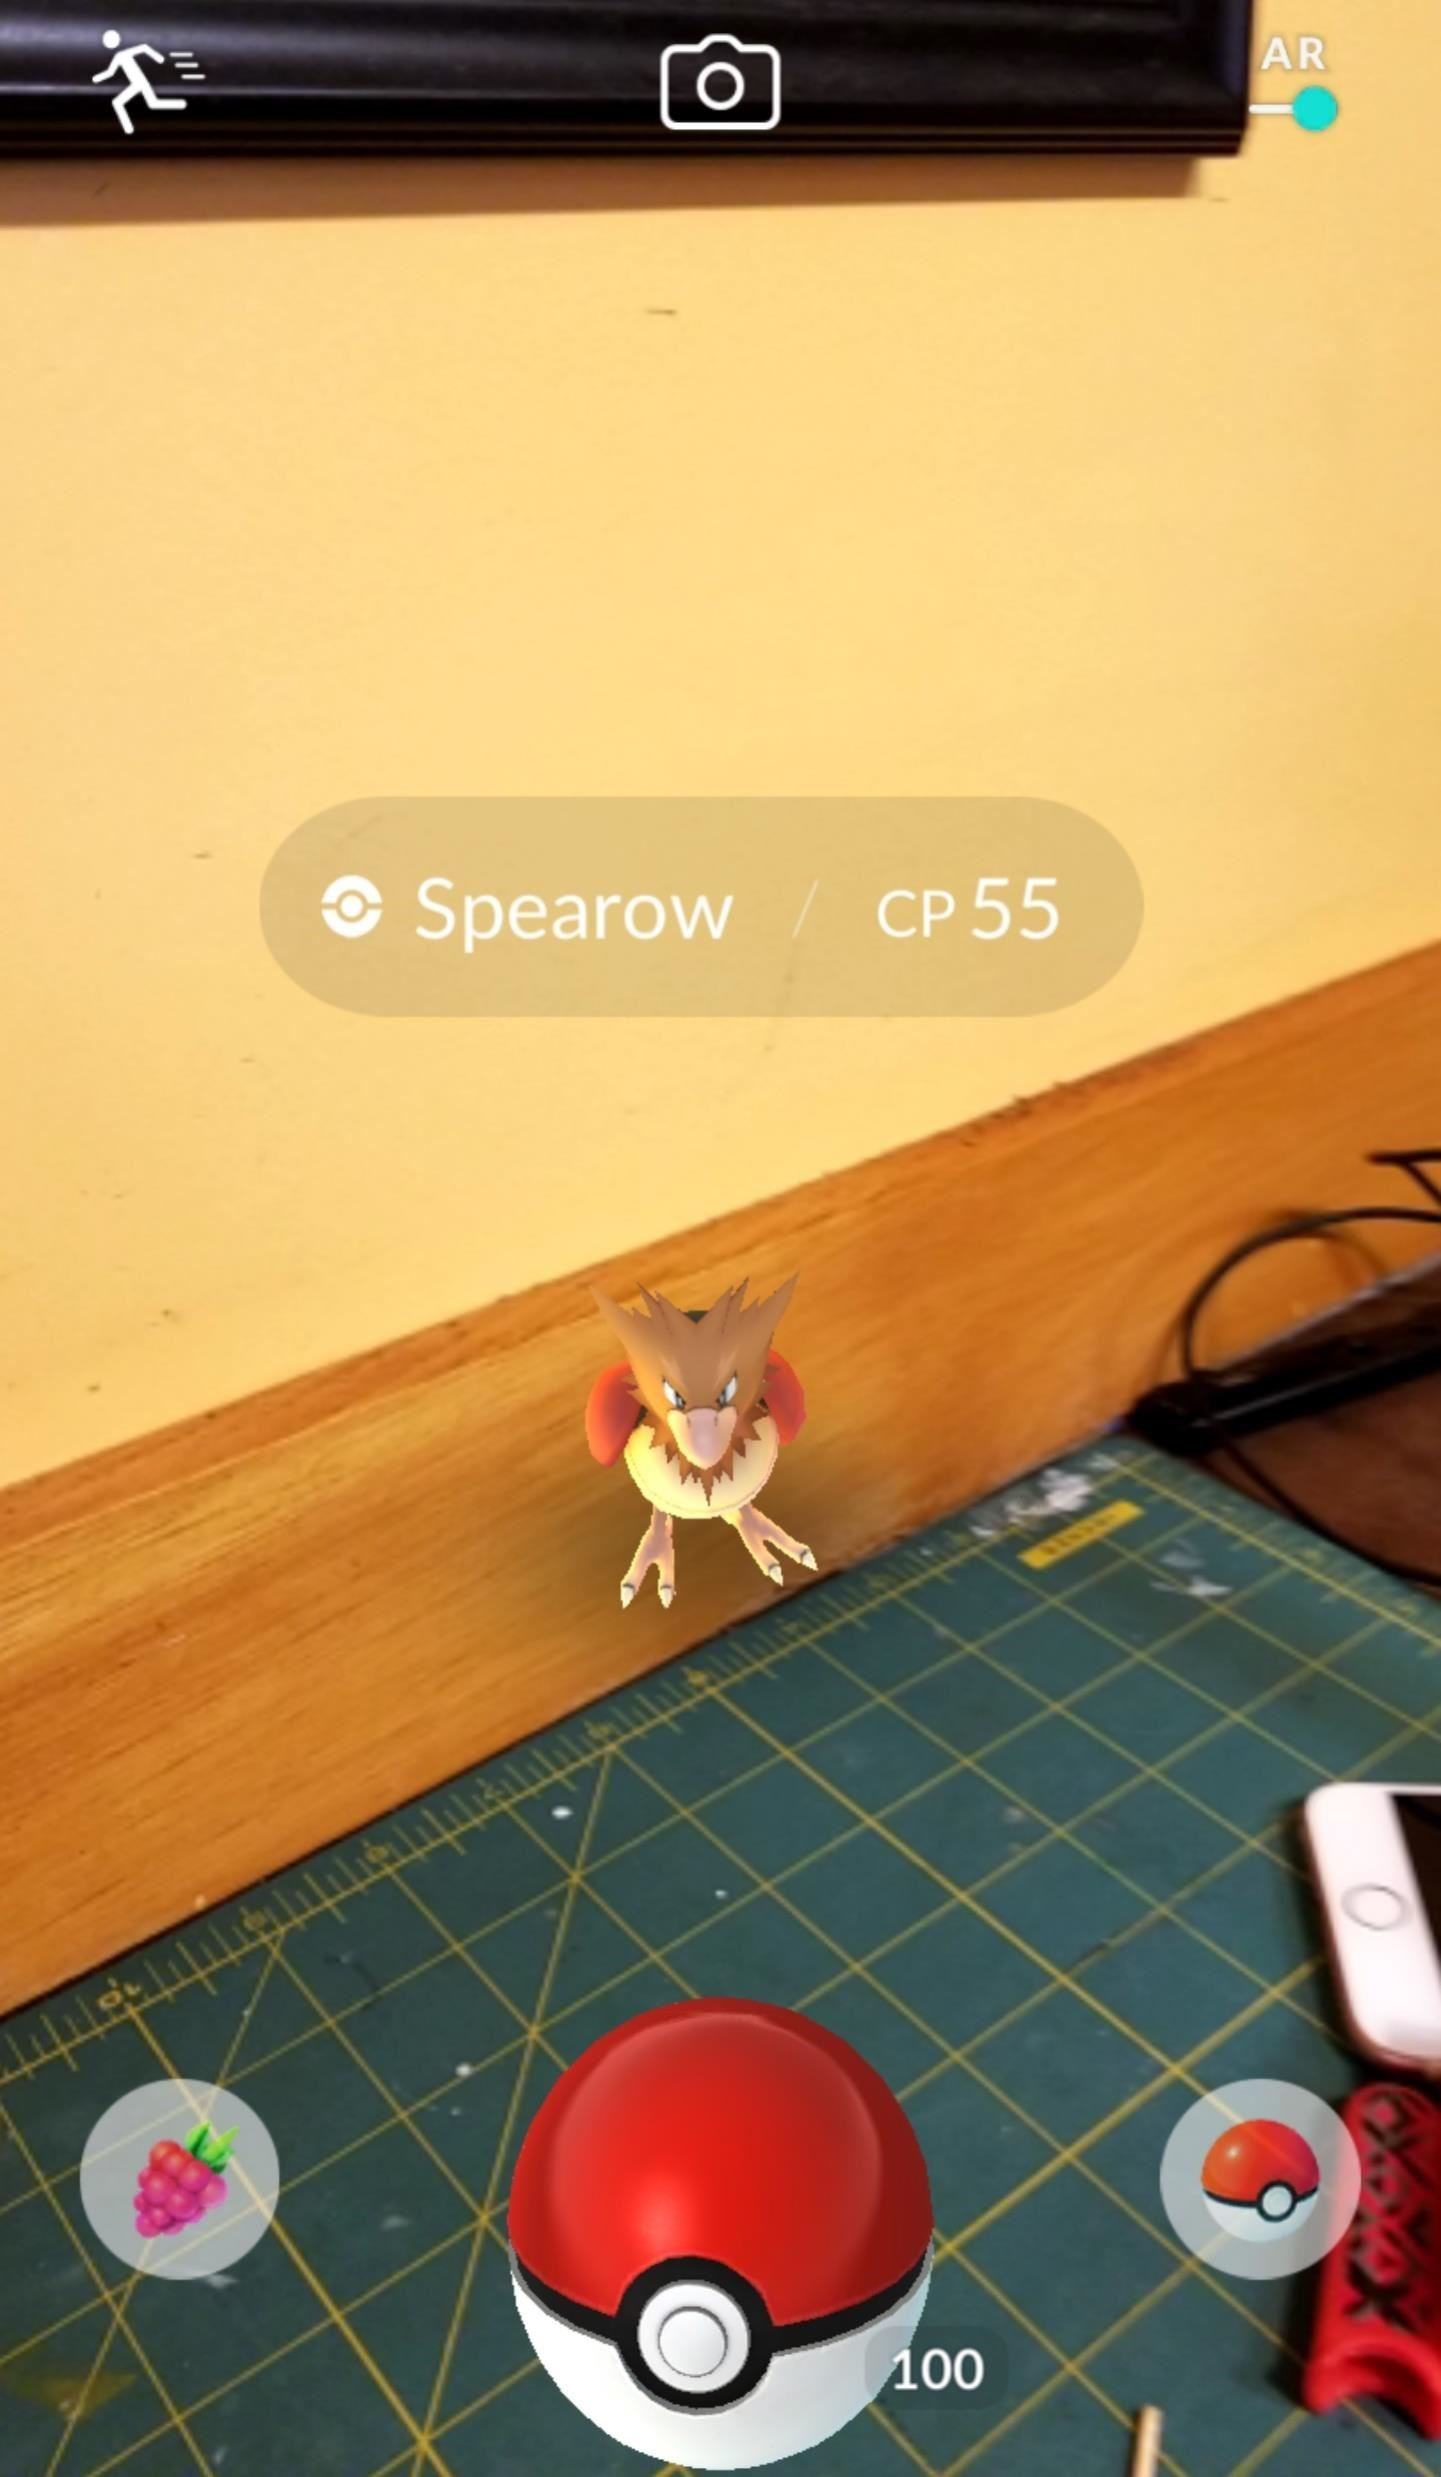 Pokémon GO 101: How to Turn Off Augmented Reality